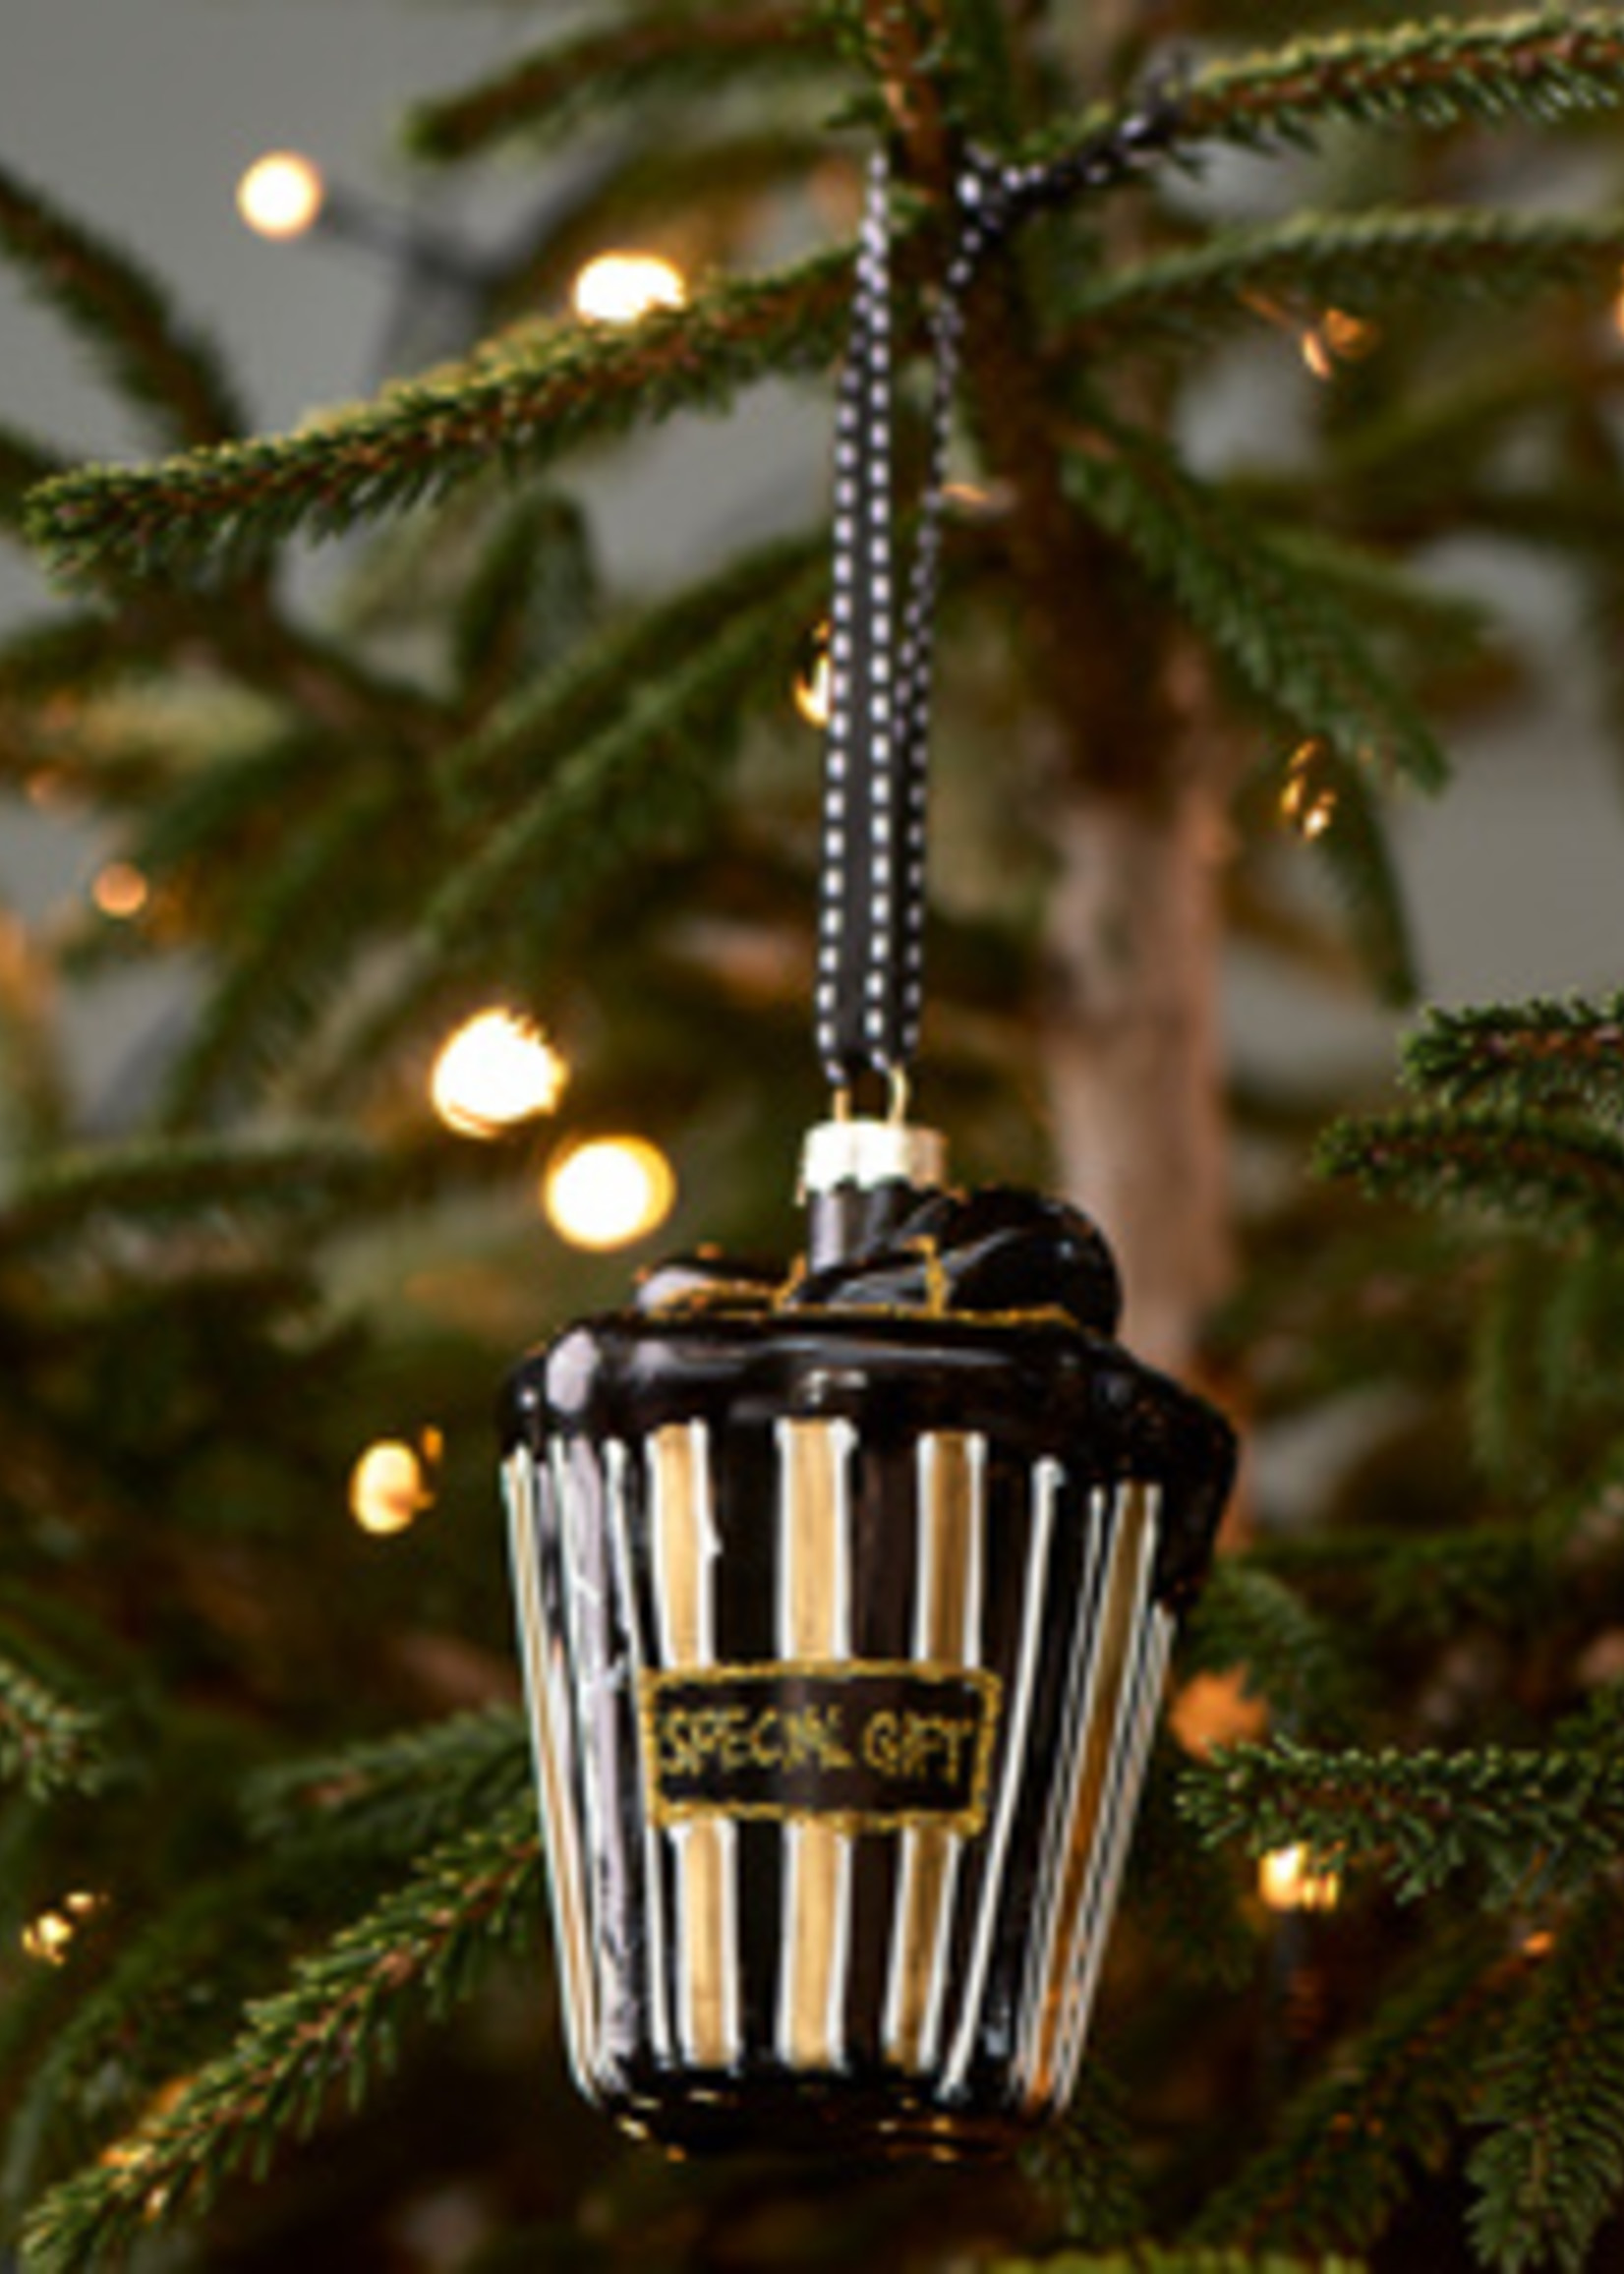 Riviera Maison A Special Gift Ornament